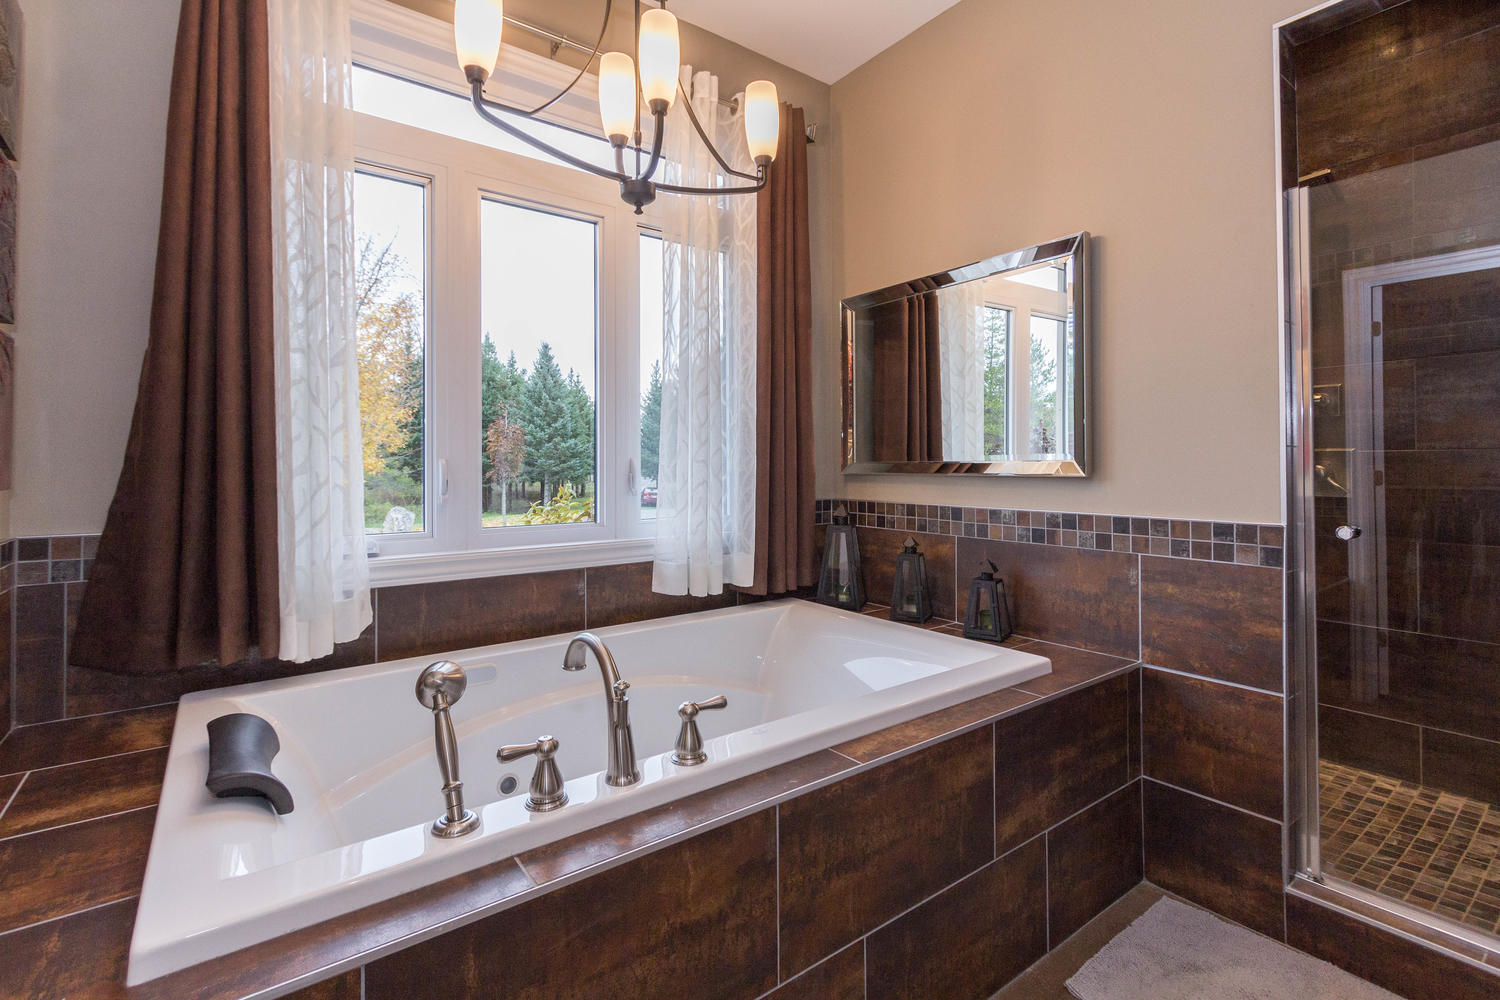 Beautiful soaker tub with removable shower wand, Jacuzzi style, large window to enjoy the peaceful surroundings while sipping on a glass of wine.